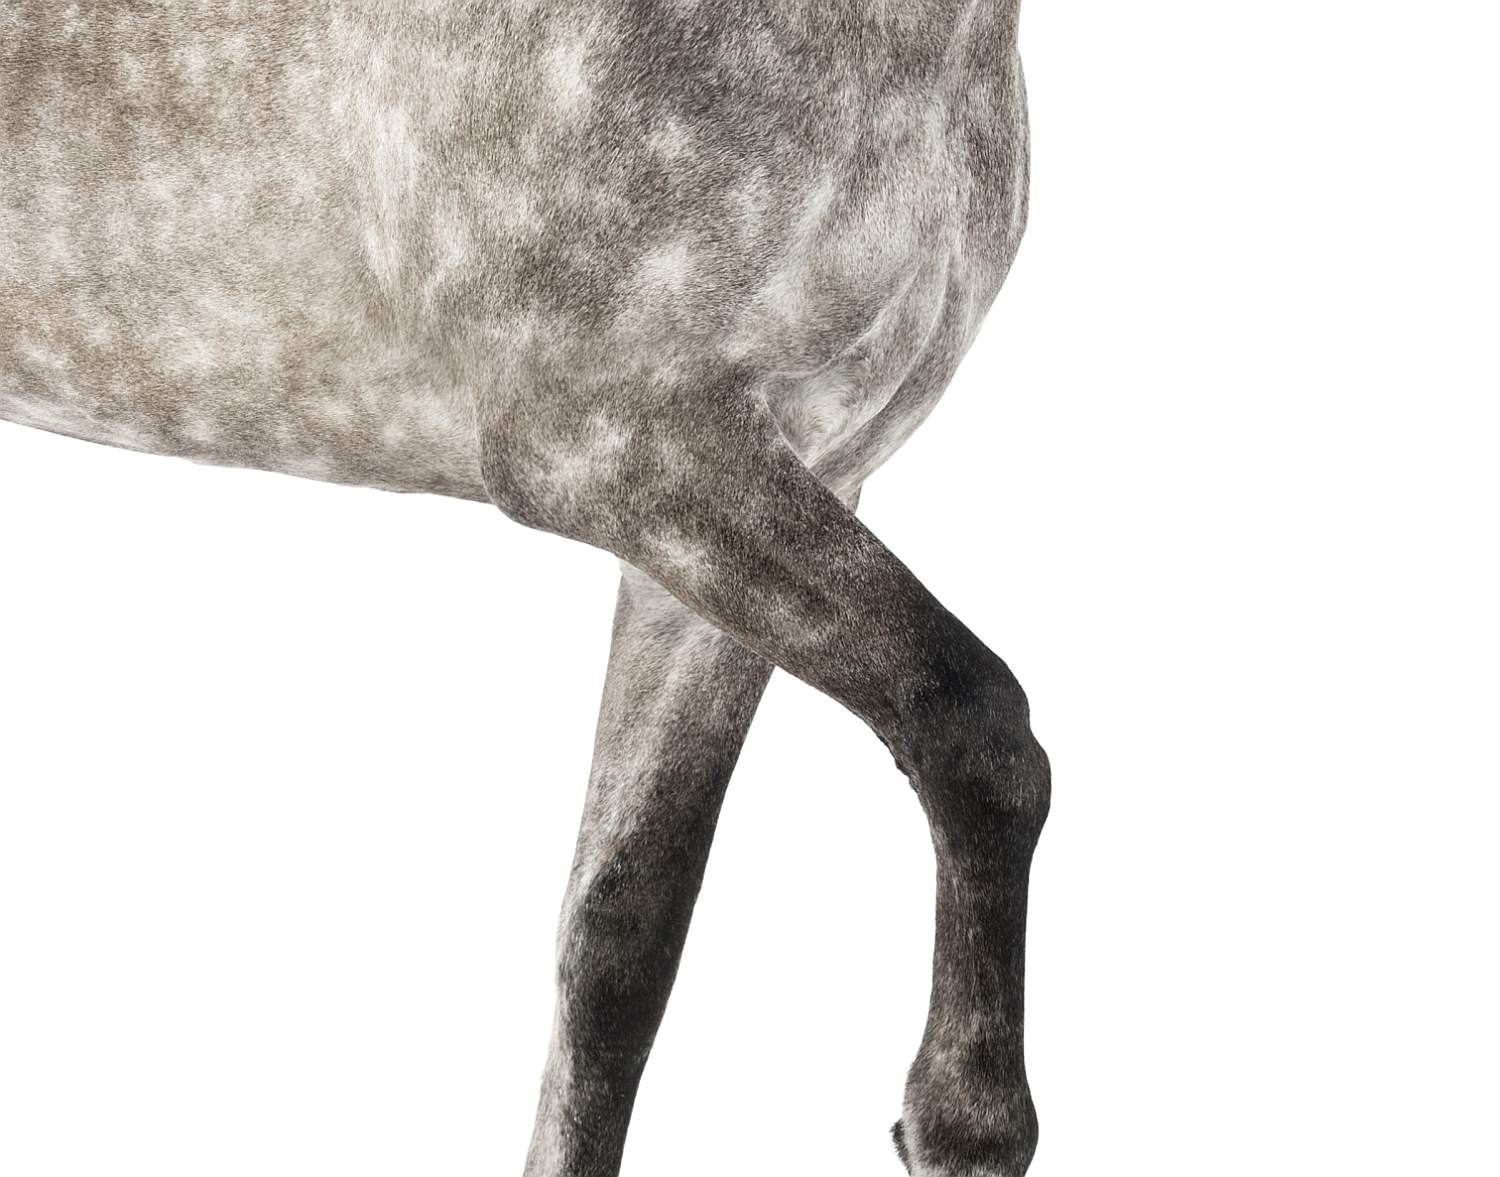 Horse with raised front let.